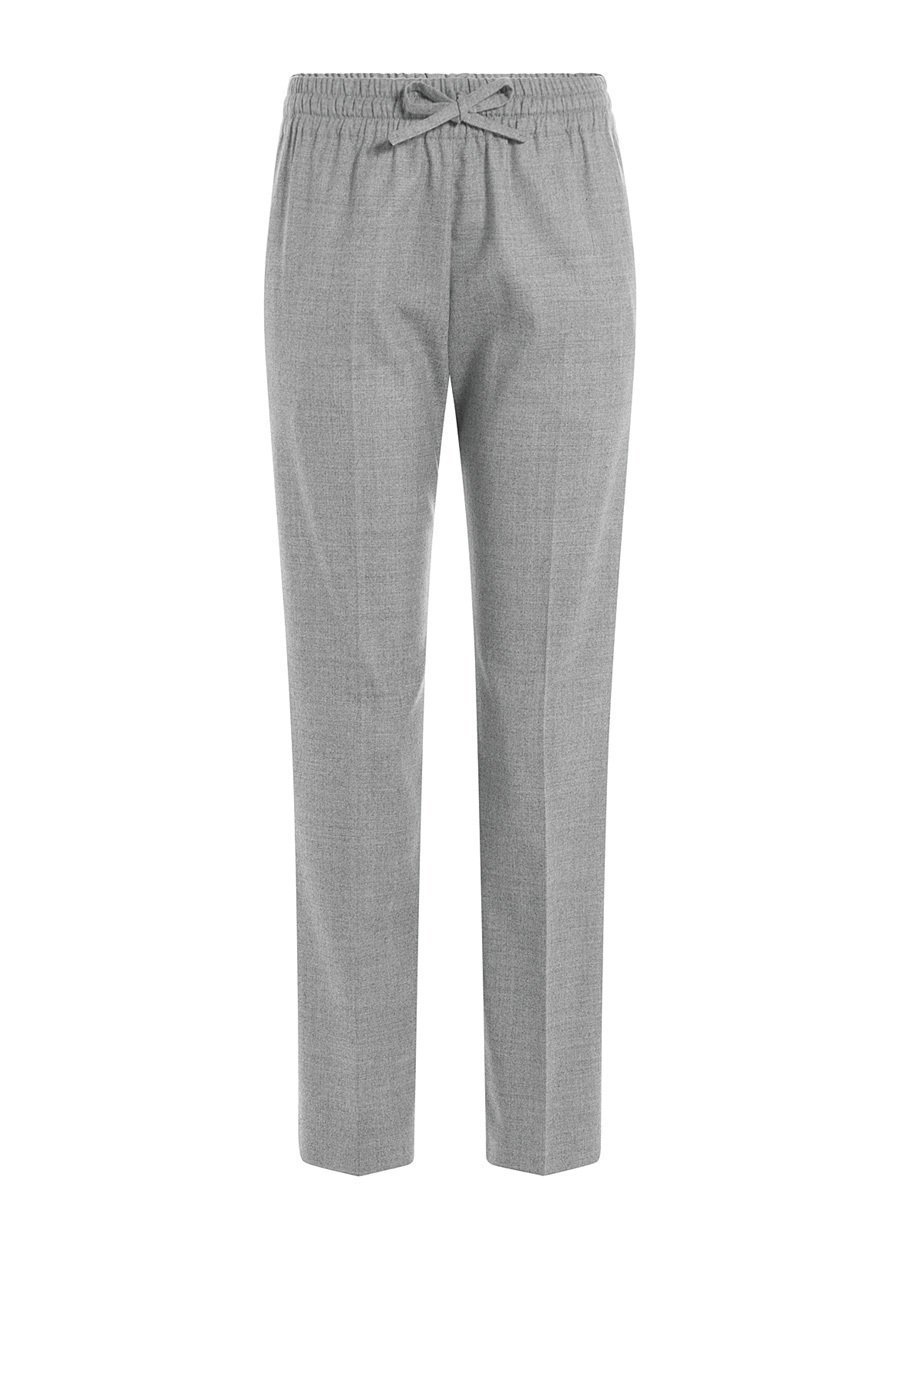 Wool Pants Grey - length: standard; pattern: plain; waist detail: belted waist/tie at waist/drawstring; waist: mid/regular rise; predominant colour: mid grey; occasions: casual, creative work; fibres: wool - 100%; fit: slim leg; pattern type: fabric; texture group: other - light to midweight; style: standard; season: s/s 2015